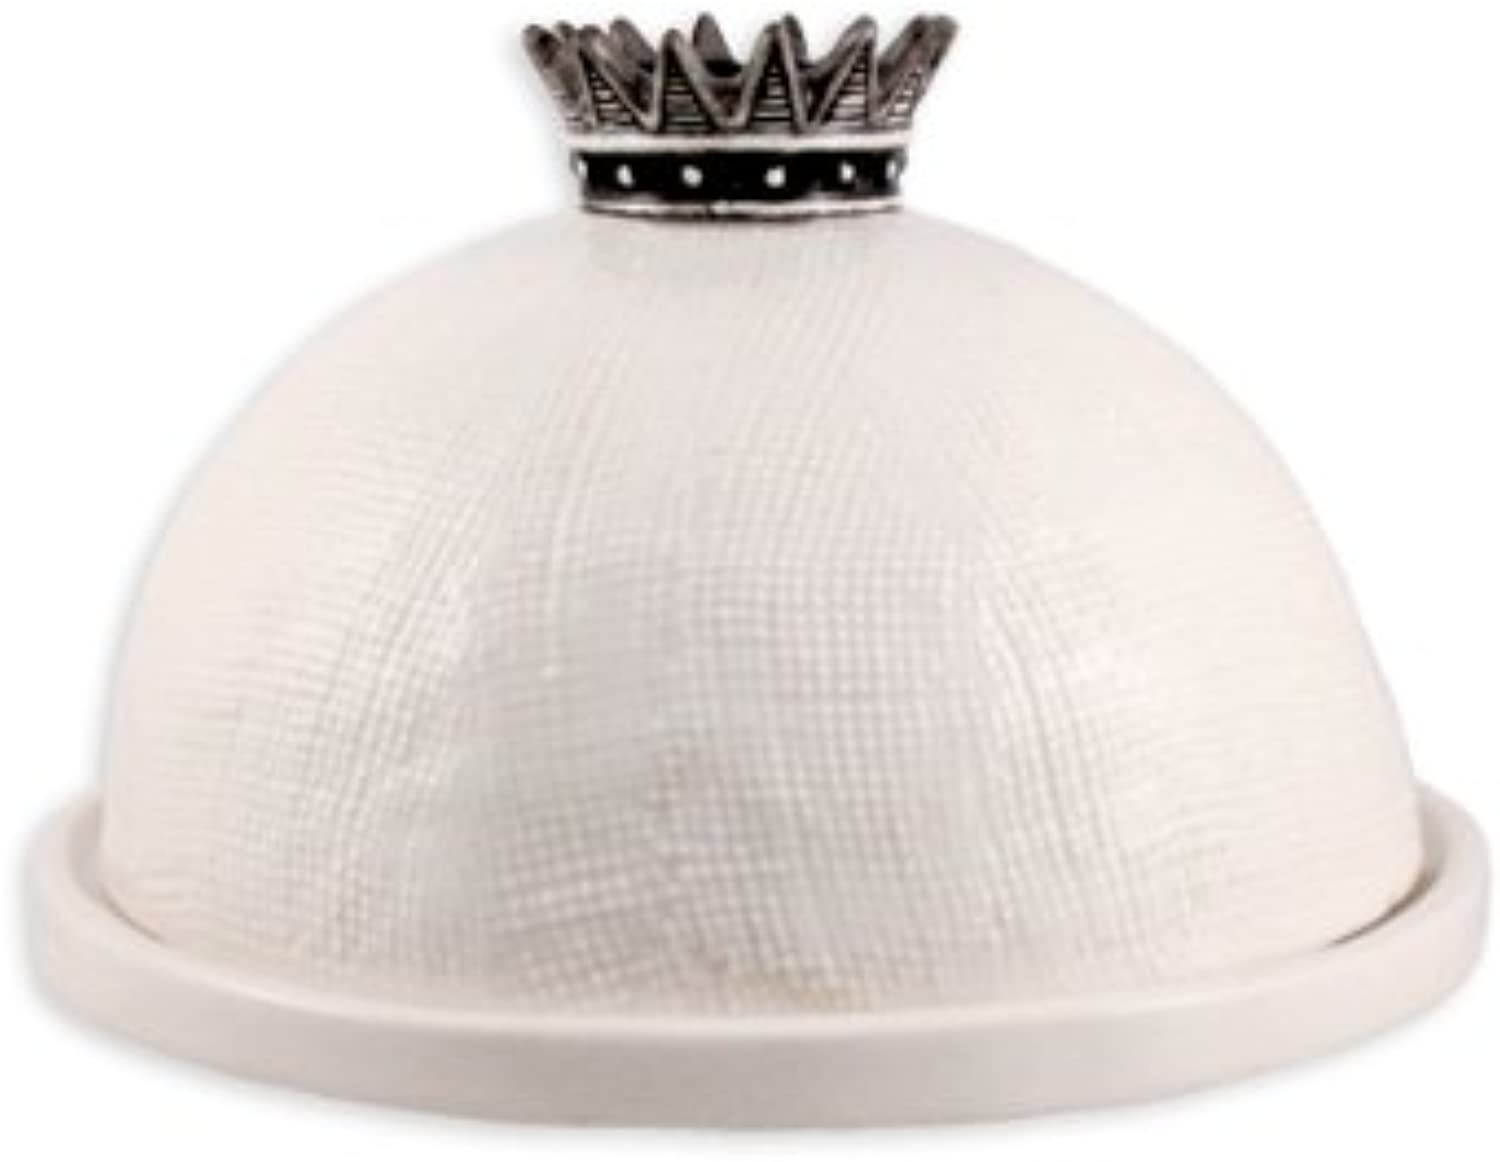 Rae Dunn Boutique Magenta Ceramic Crown Cheese Dome